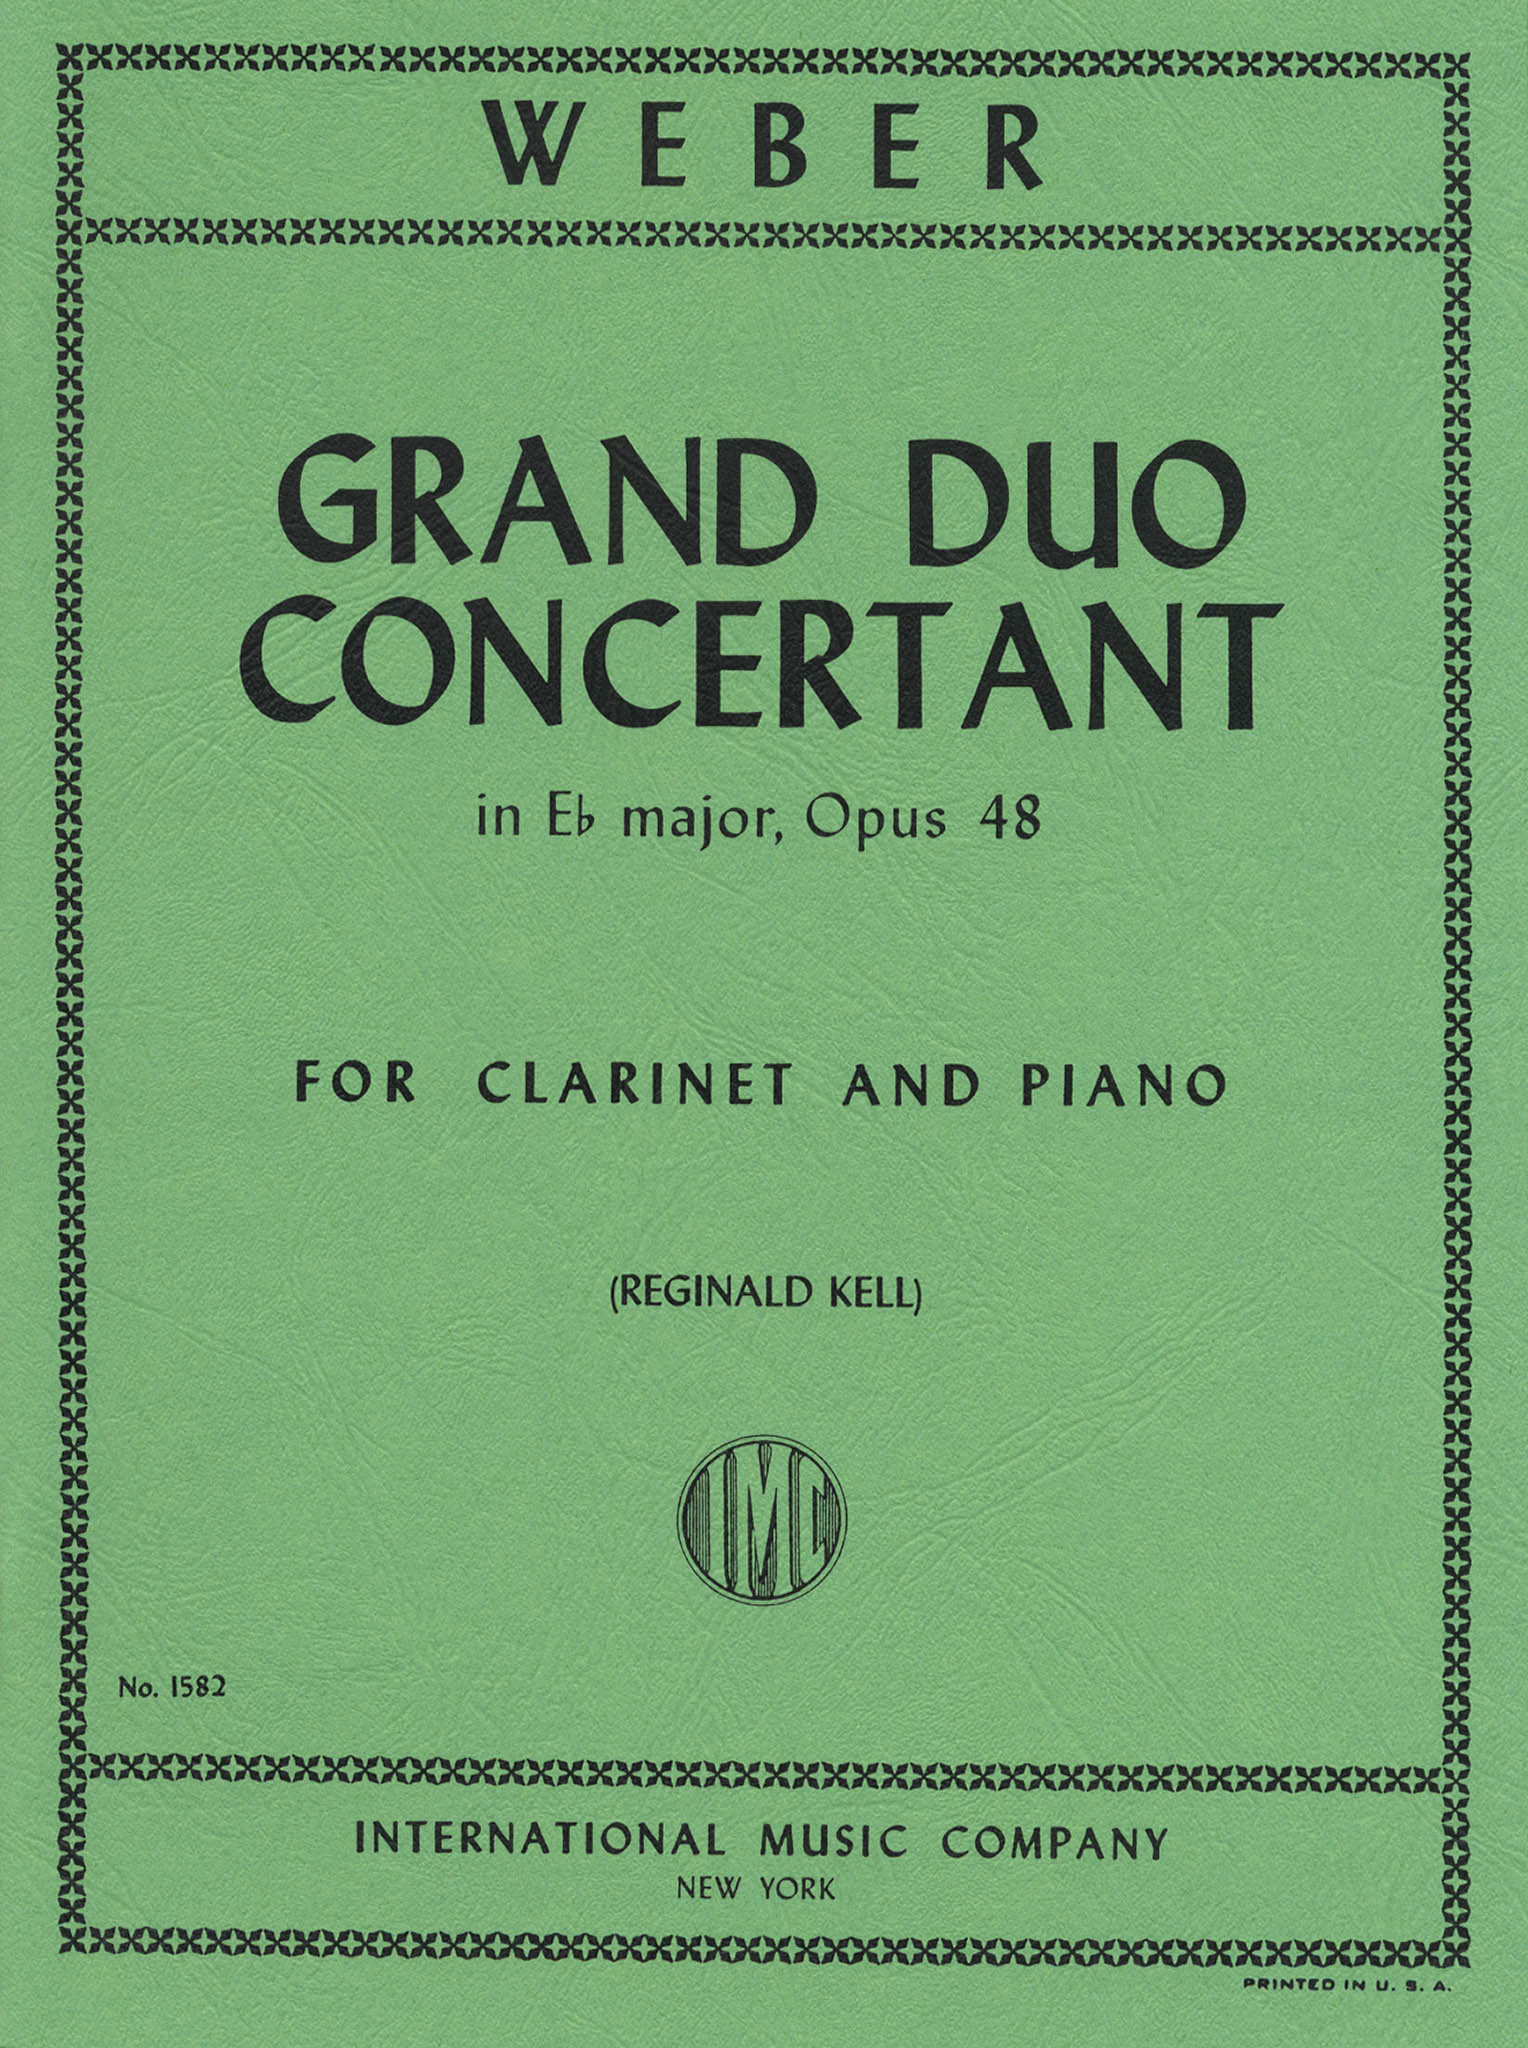 Grand Duo Concertant, Op. 48 Cover